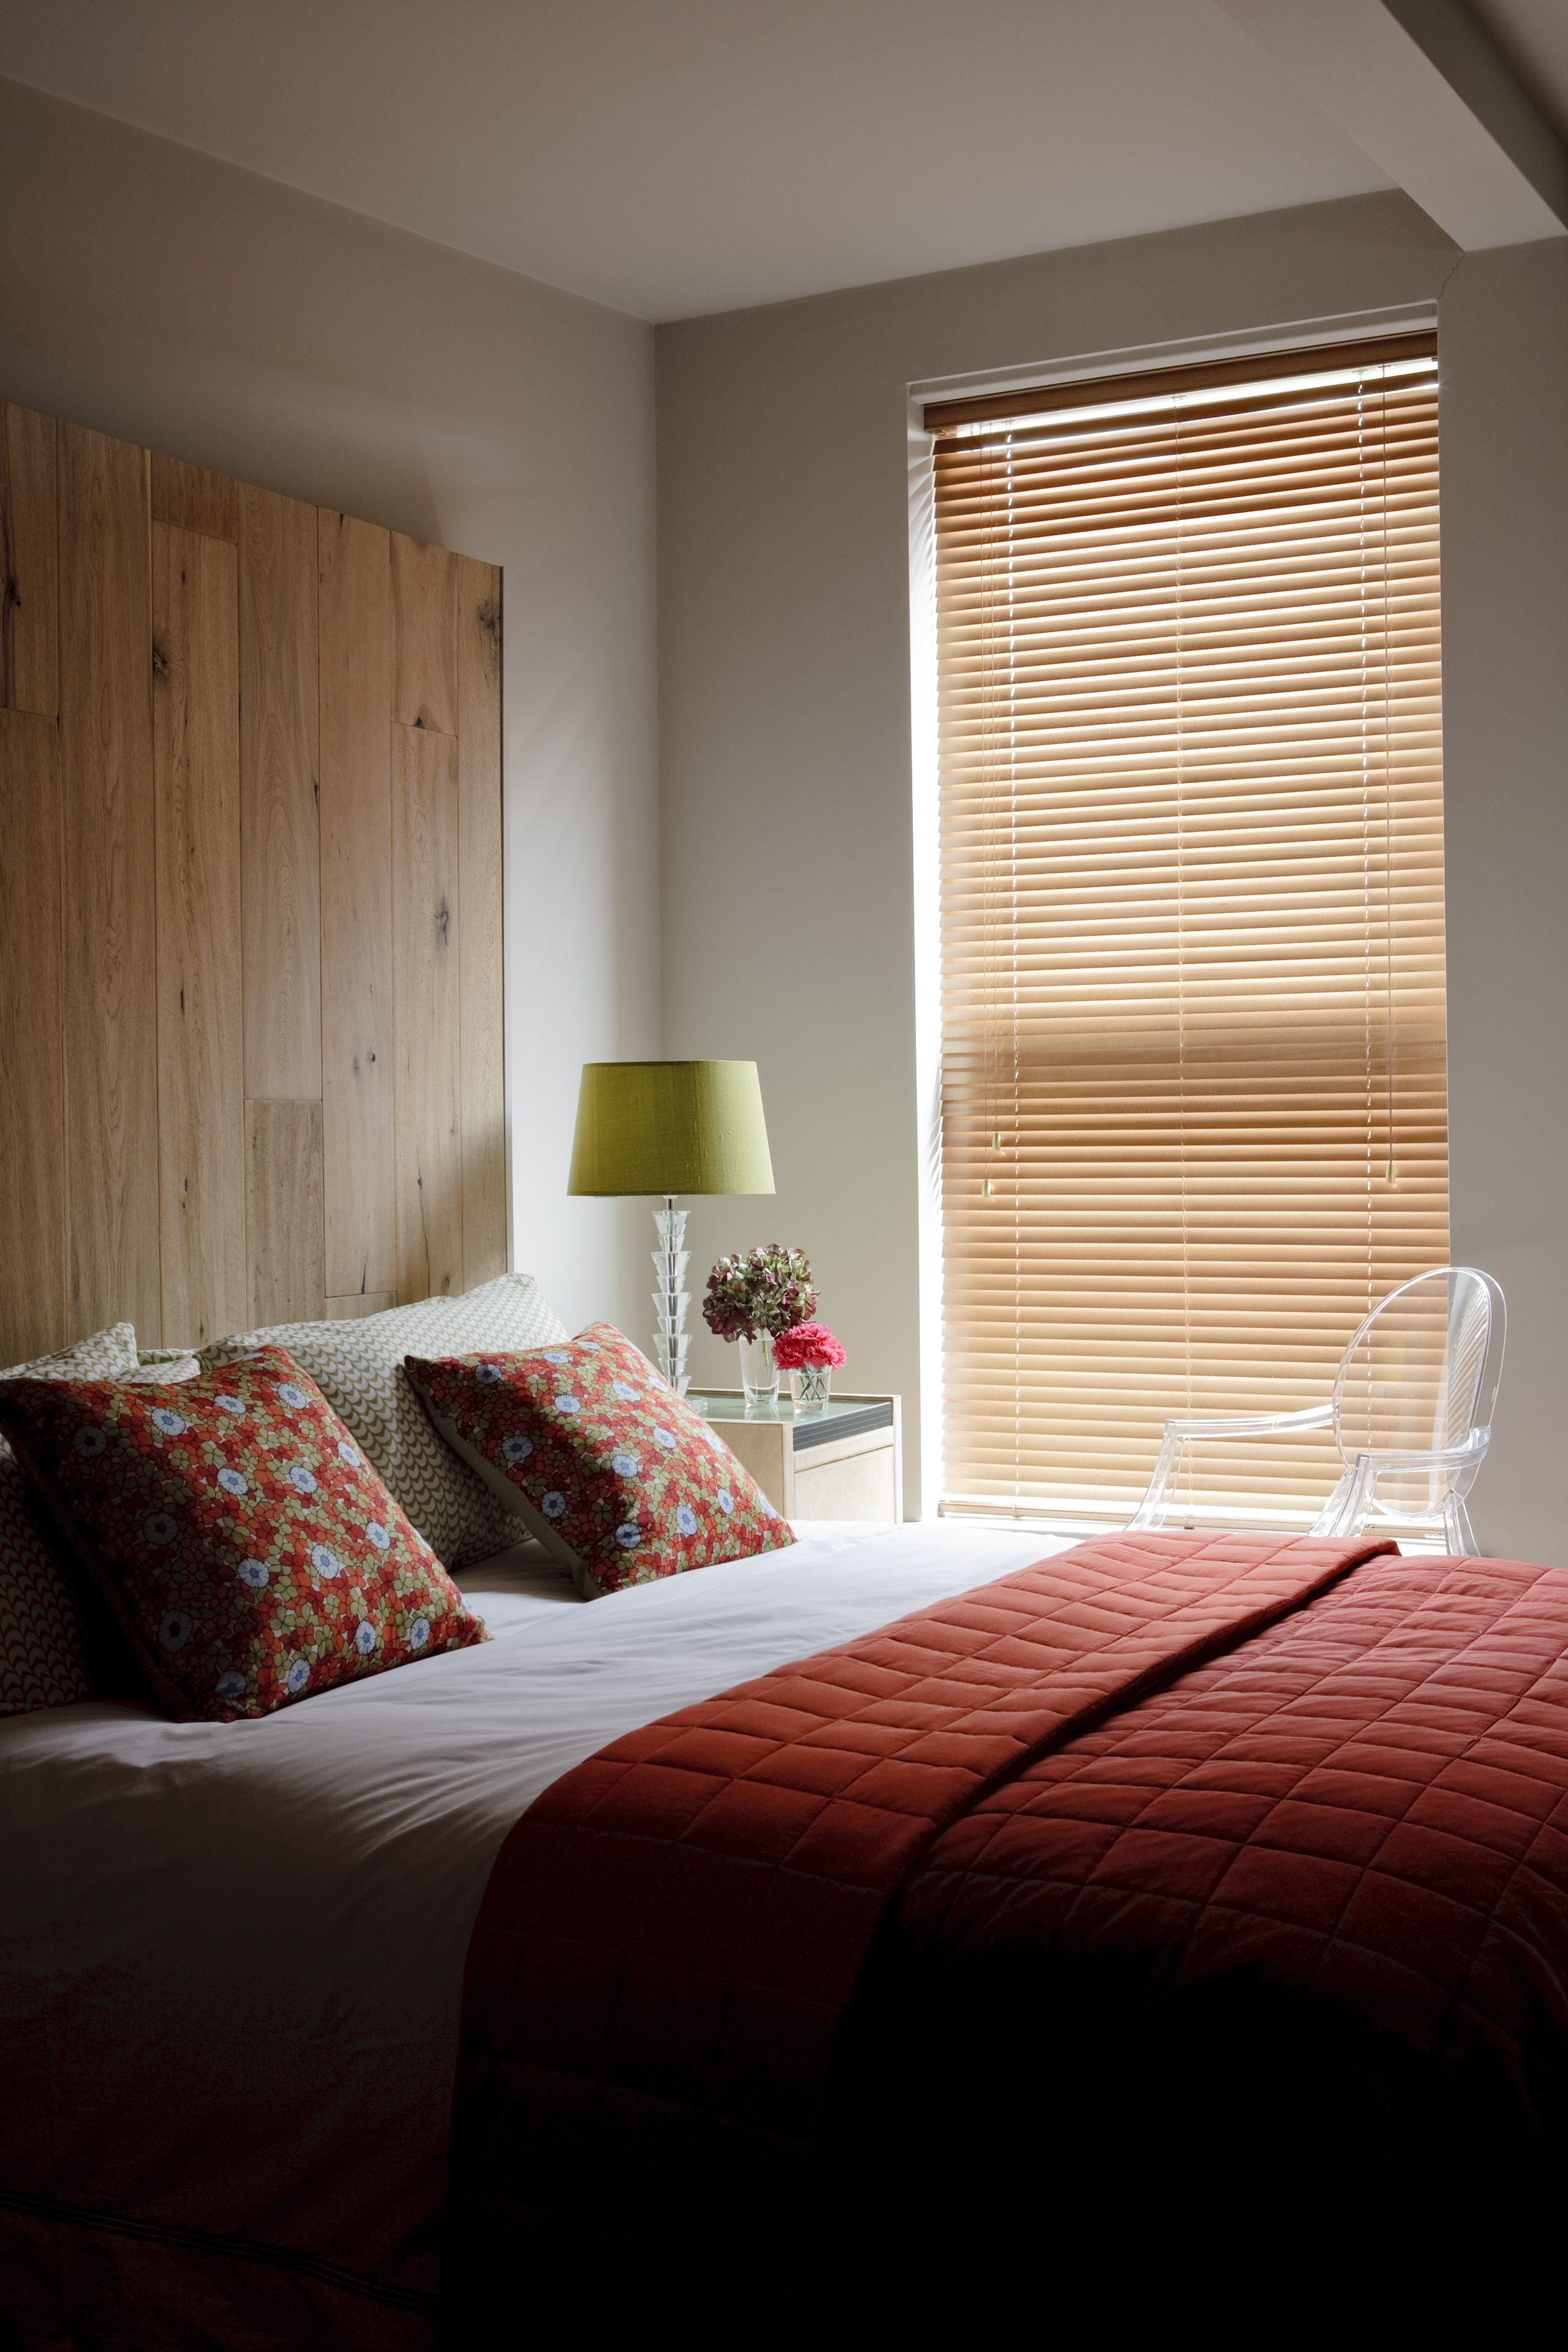 Bed covering window  clover and thorne wooden window venetian blinds  clover u thorne